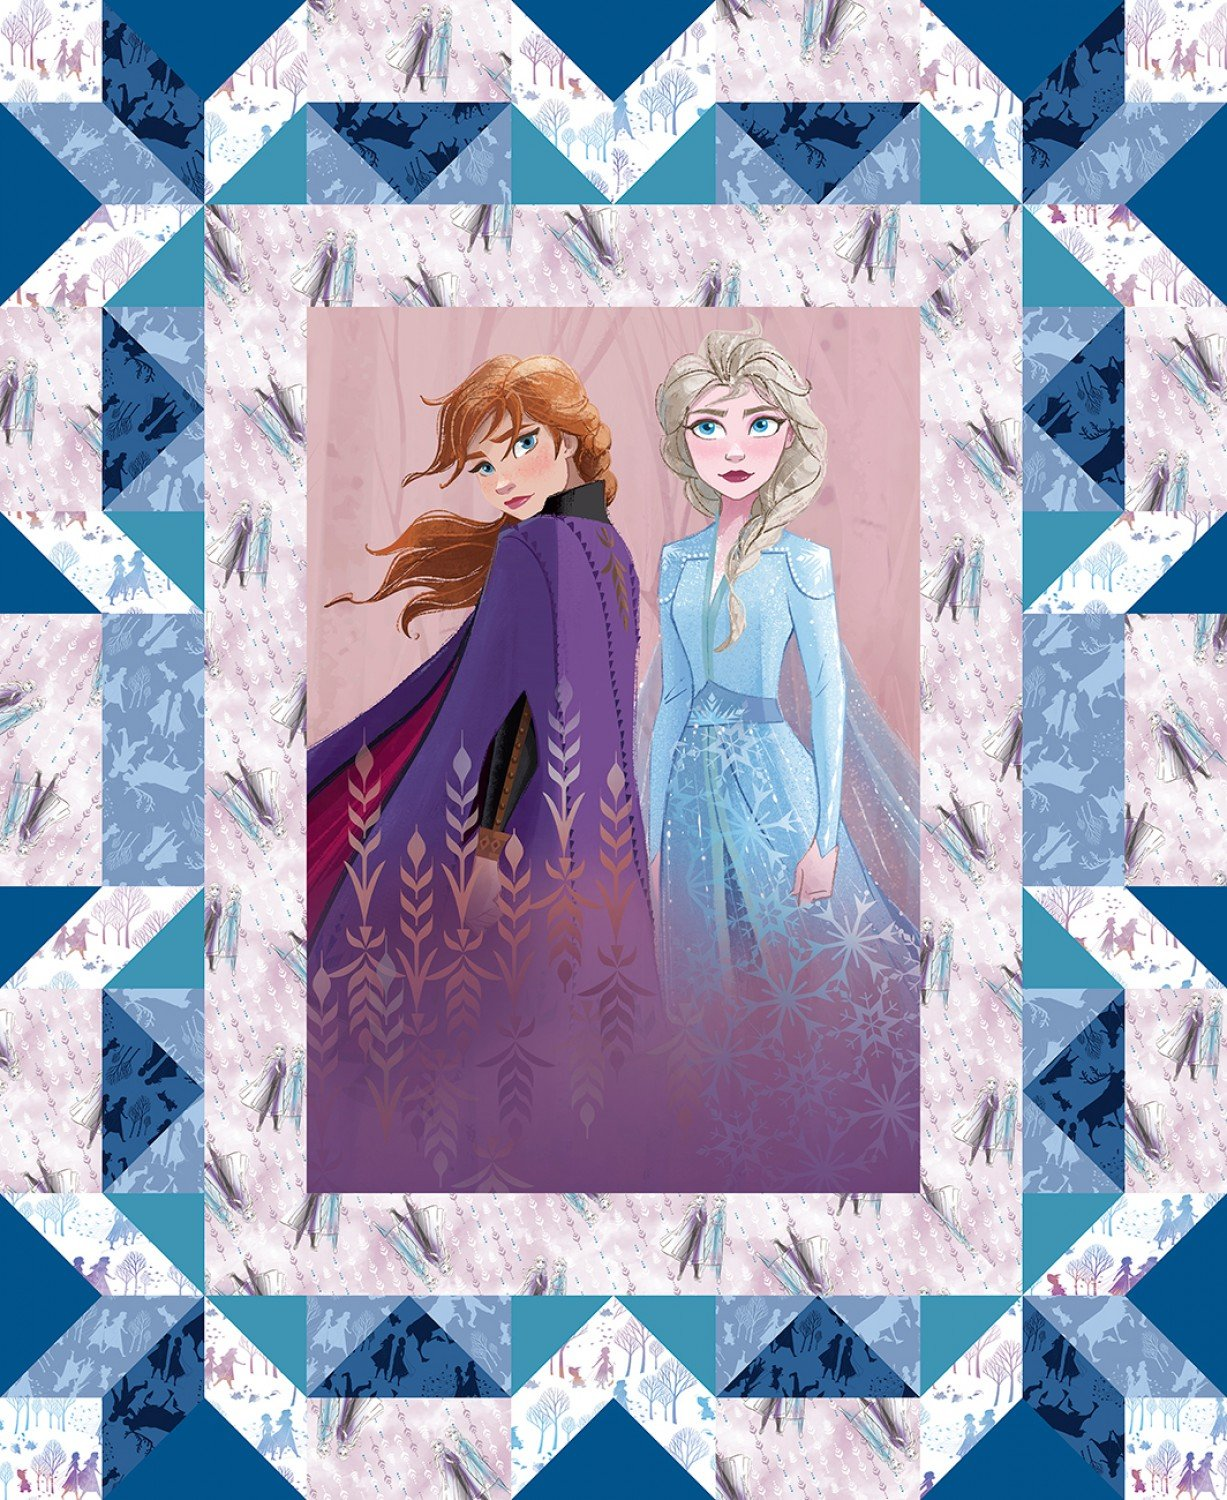 Frozen 2 from Disney Elsa and Ana Cotton Fabric Panel 44 x 35.5 Inches